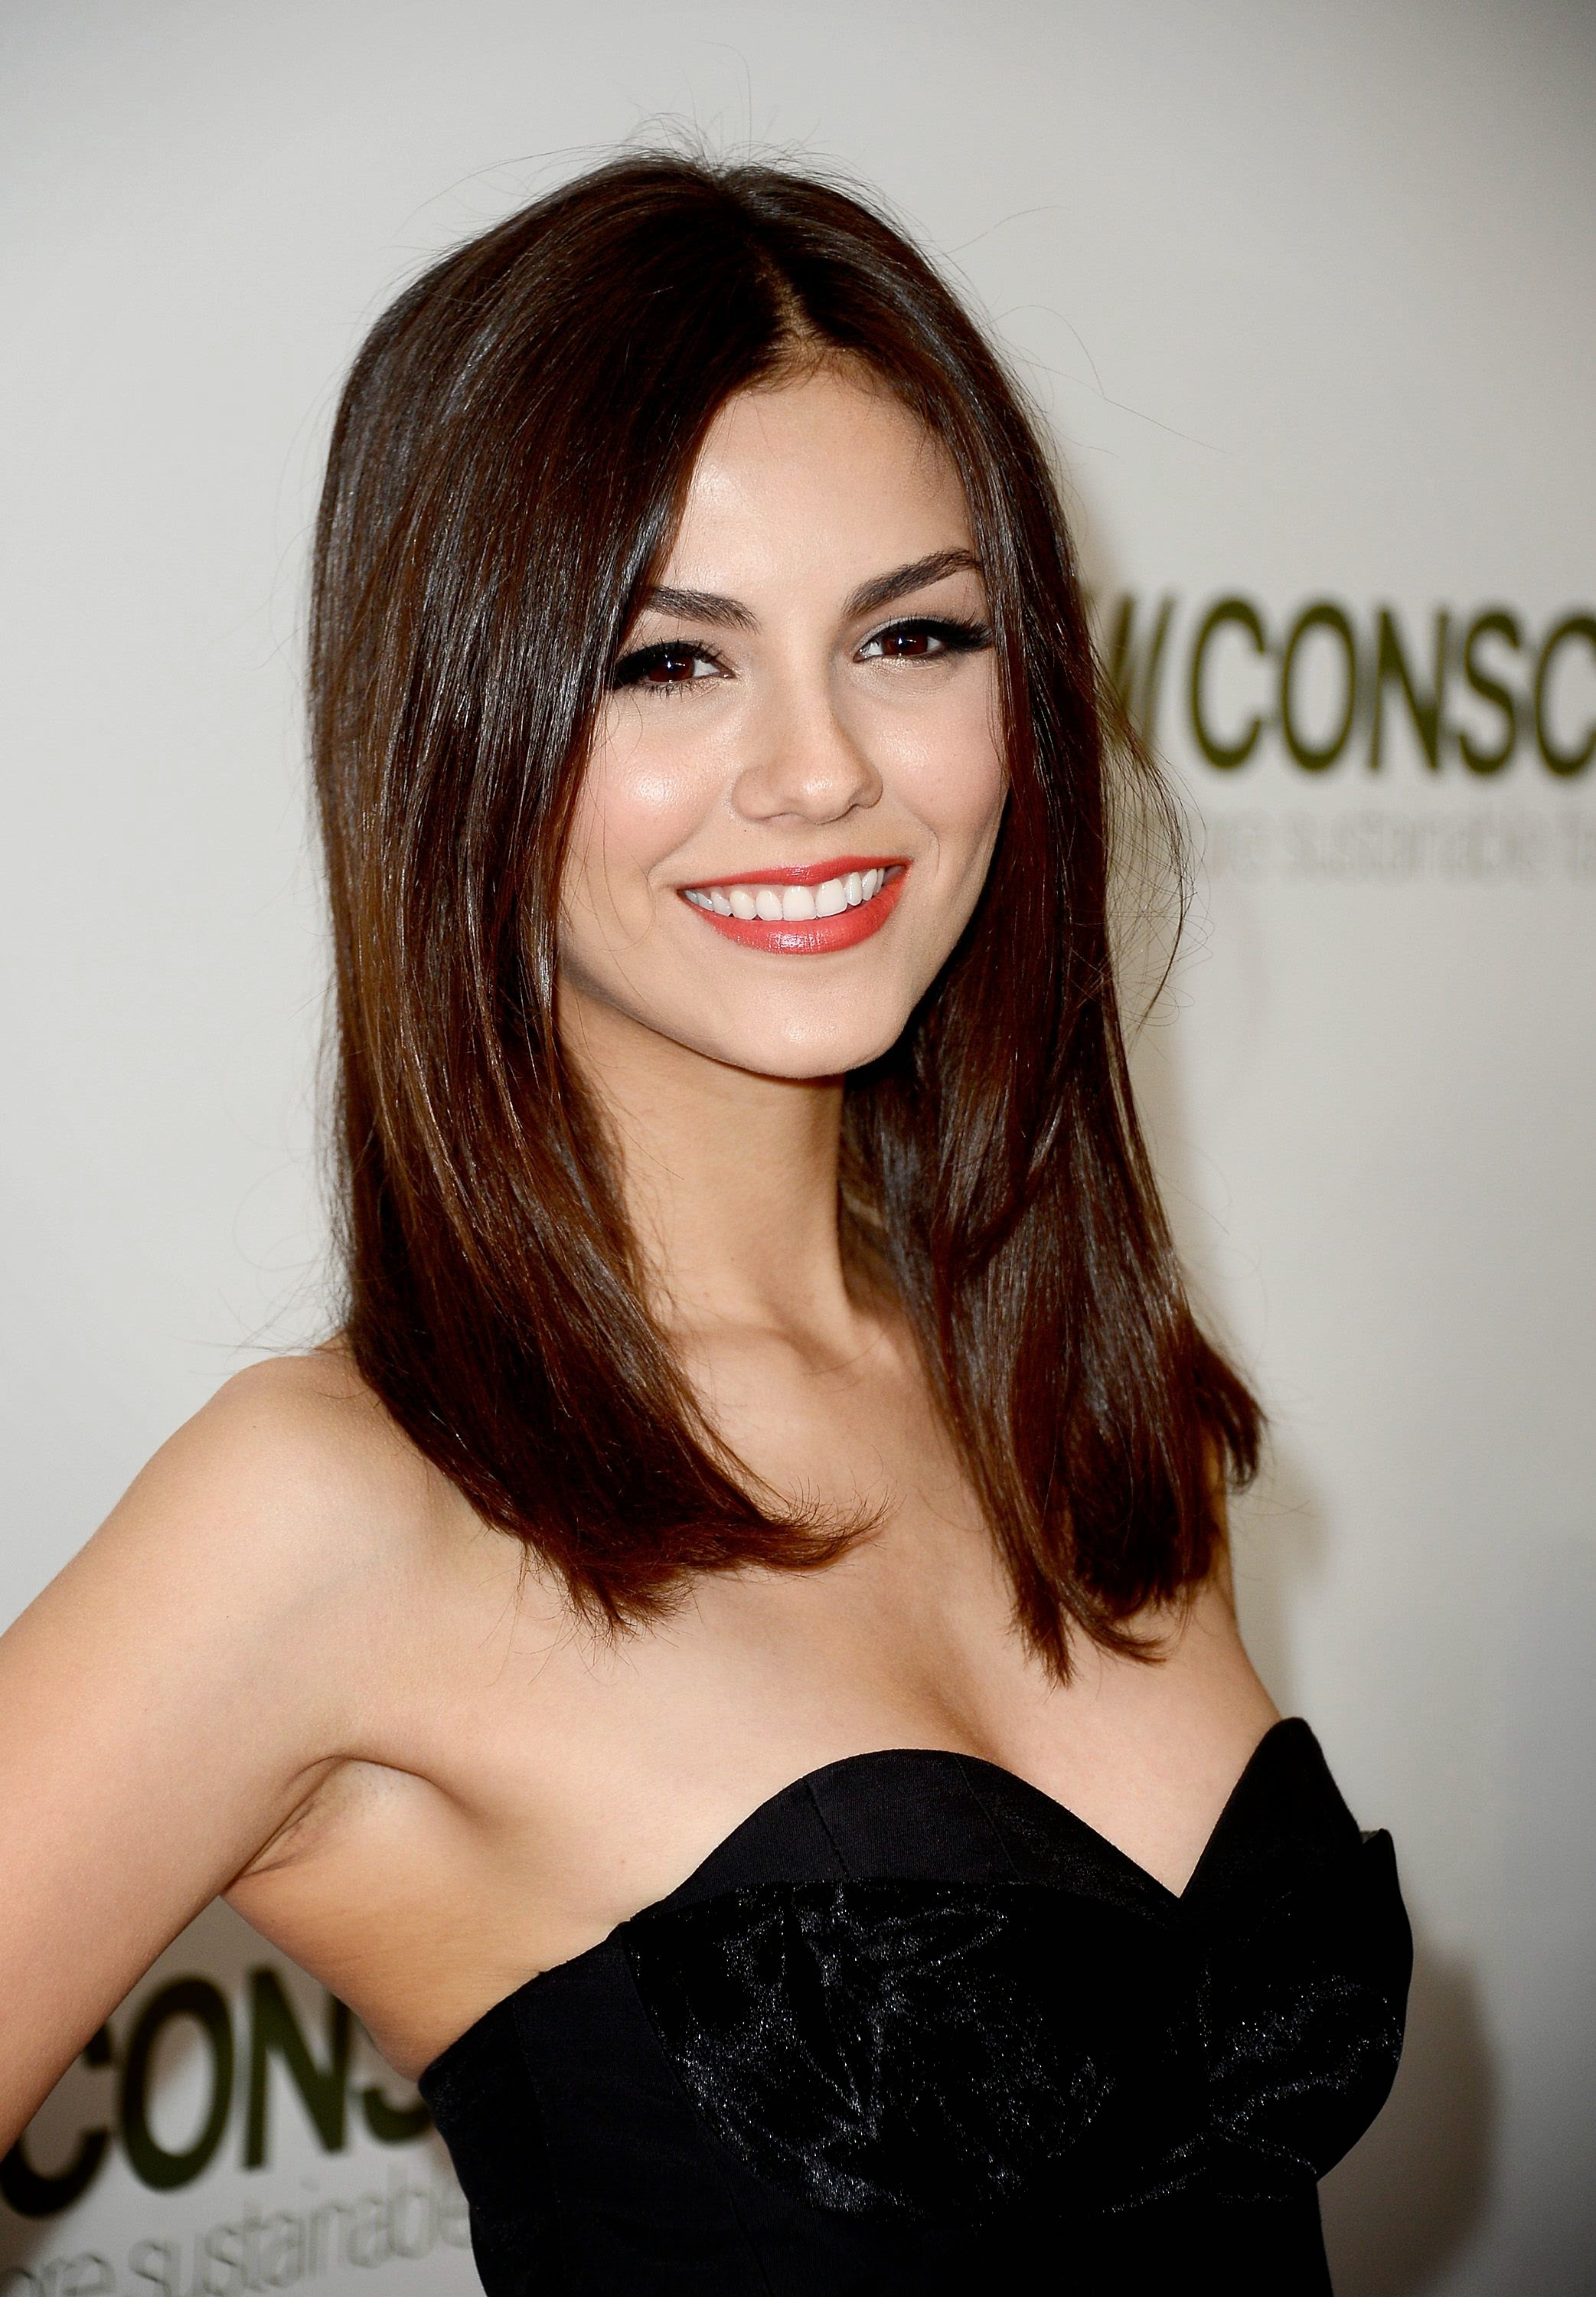 Victoria Justice Pictures Gallery 28 Film Actresses